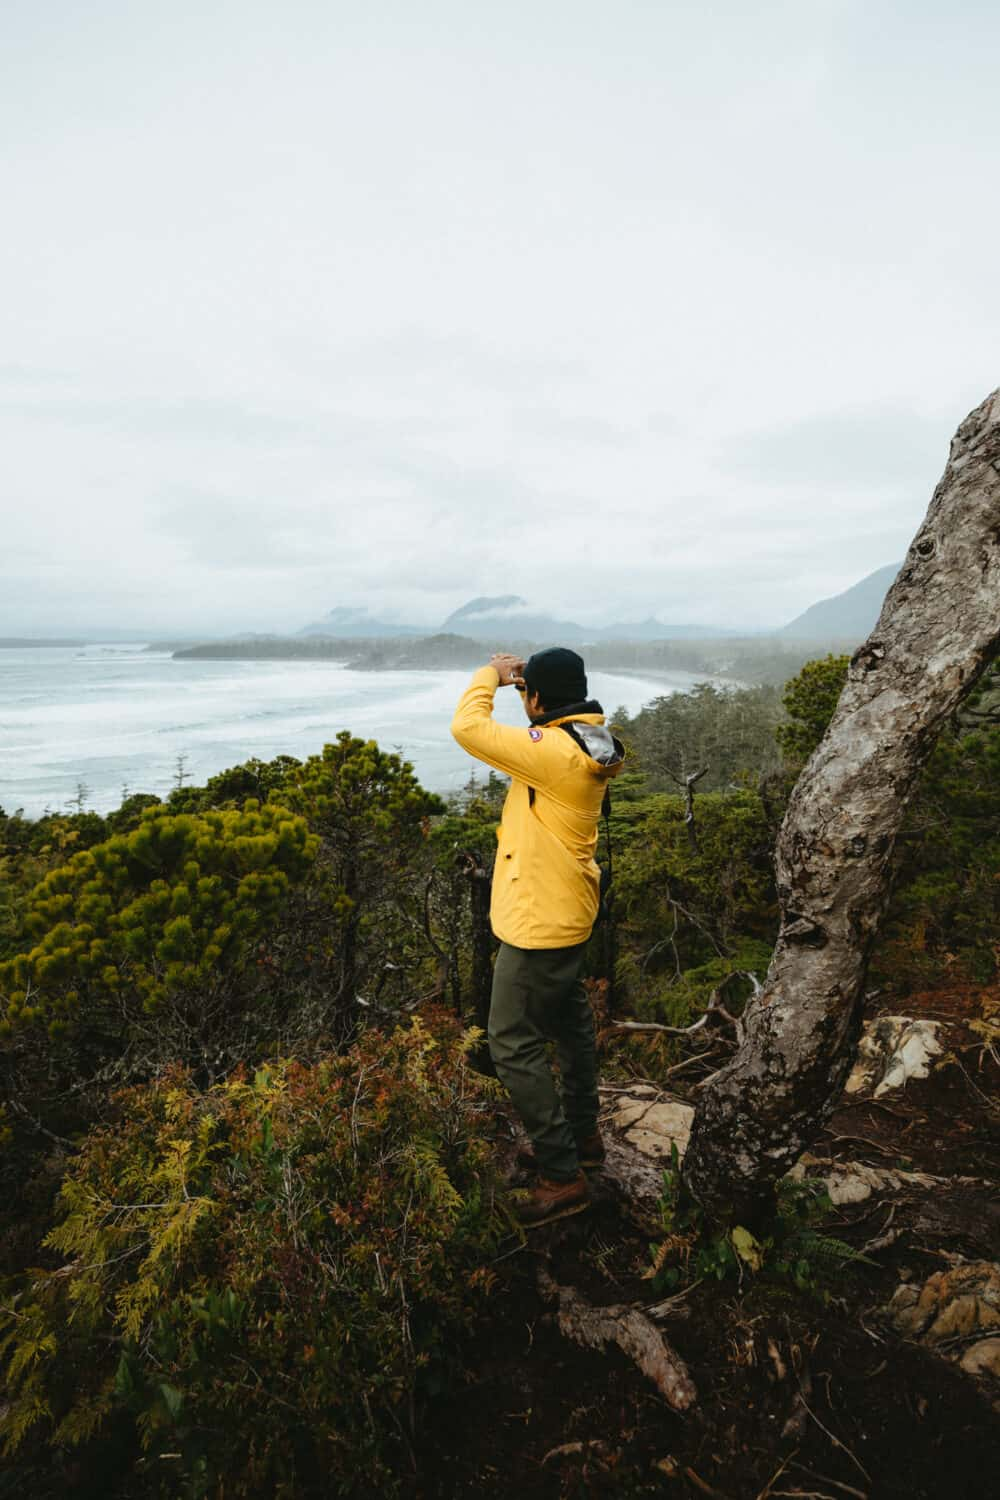 Cox Bay Lookout Trail - 3 Days In Tofino